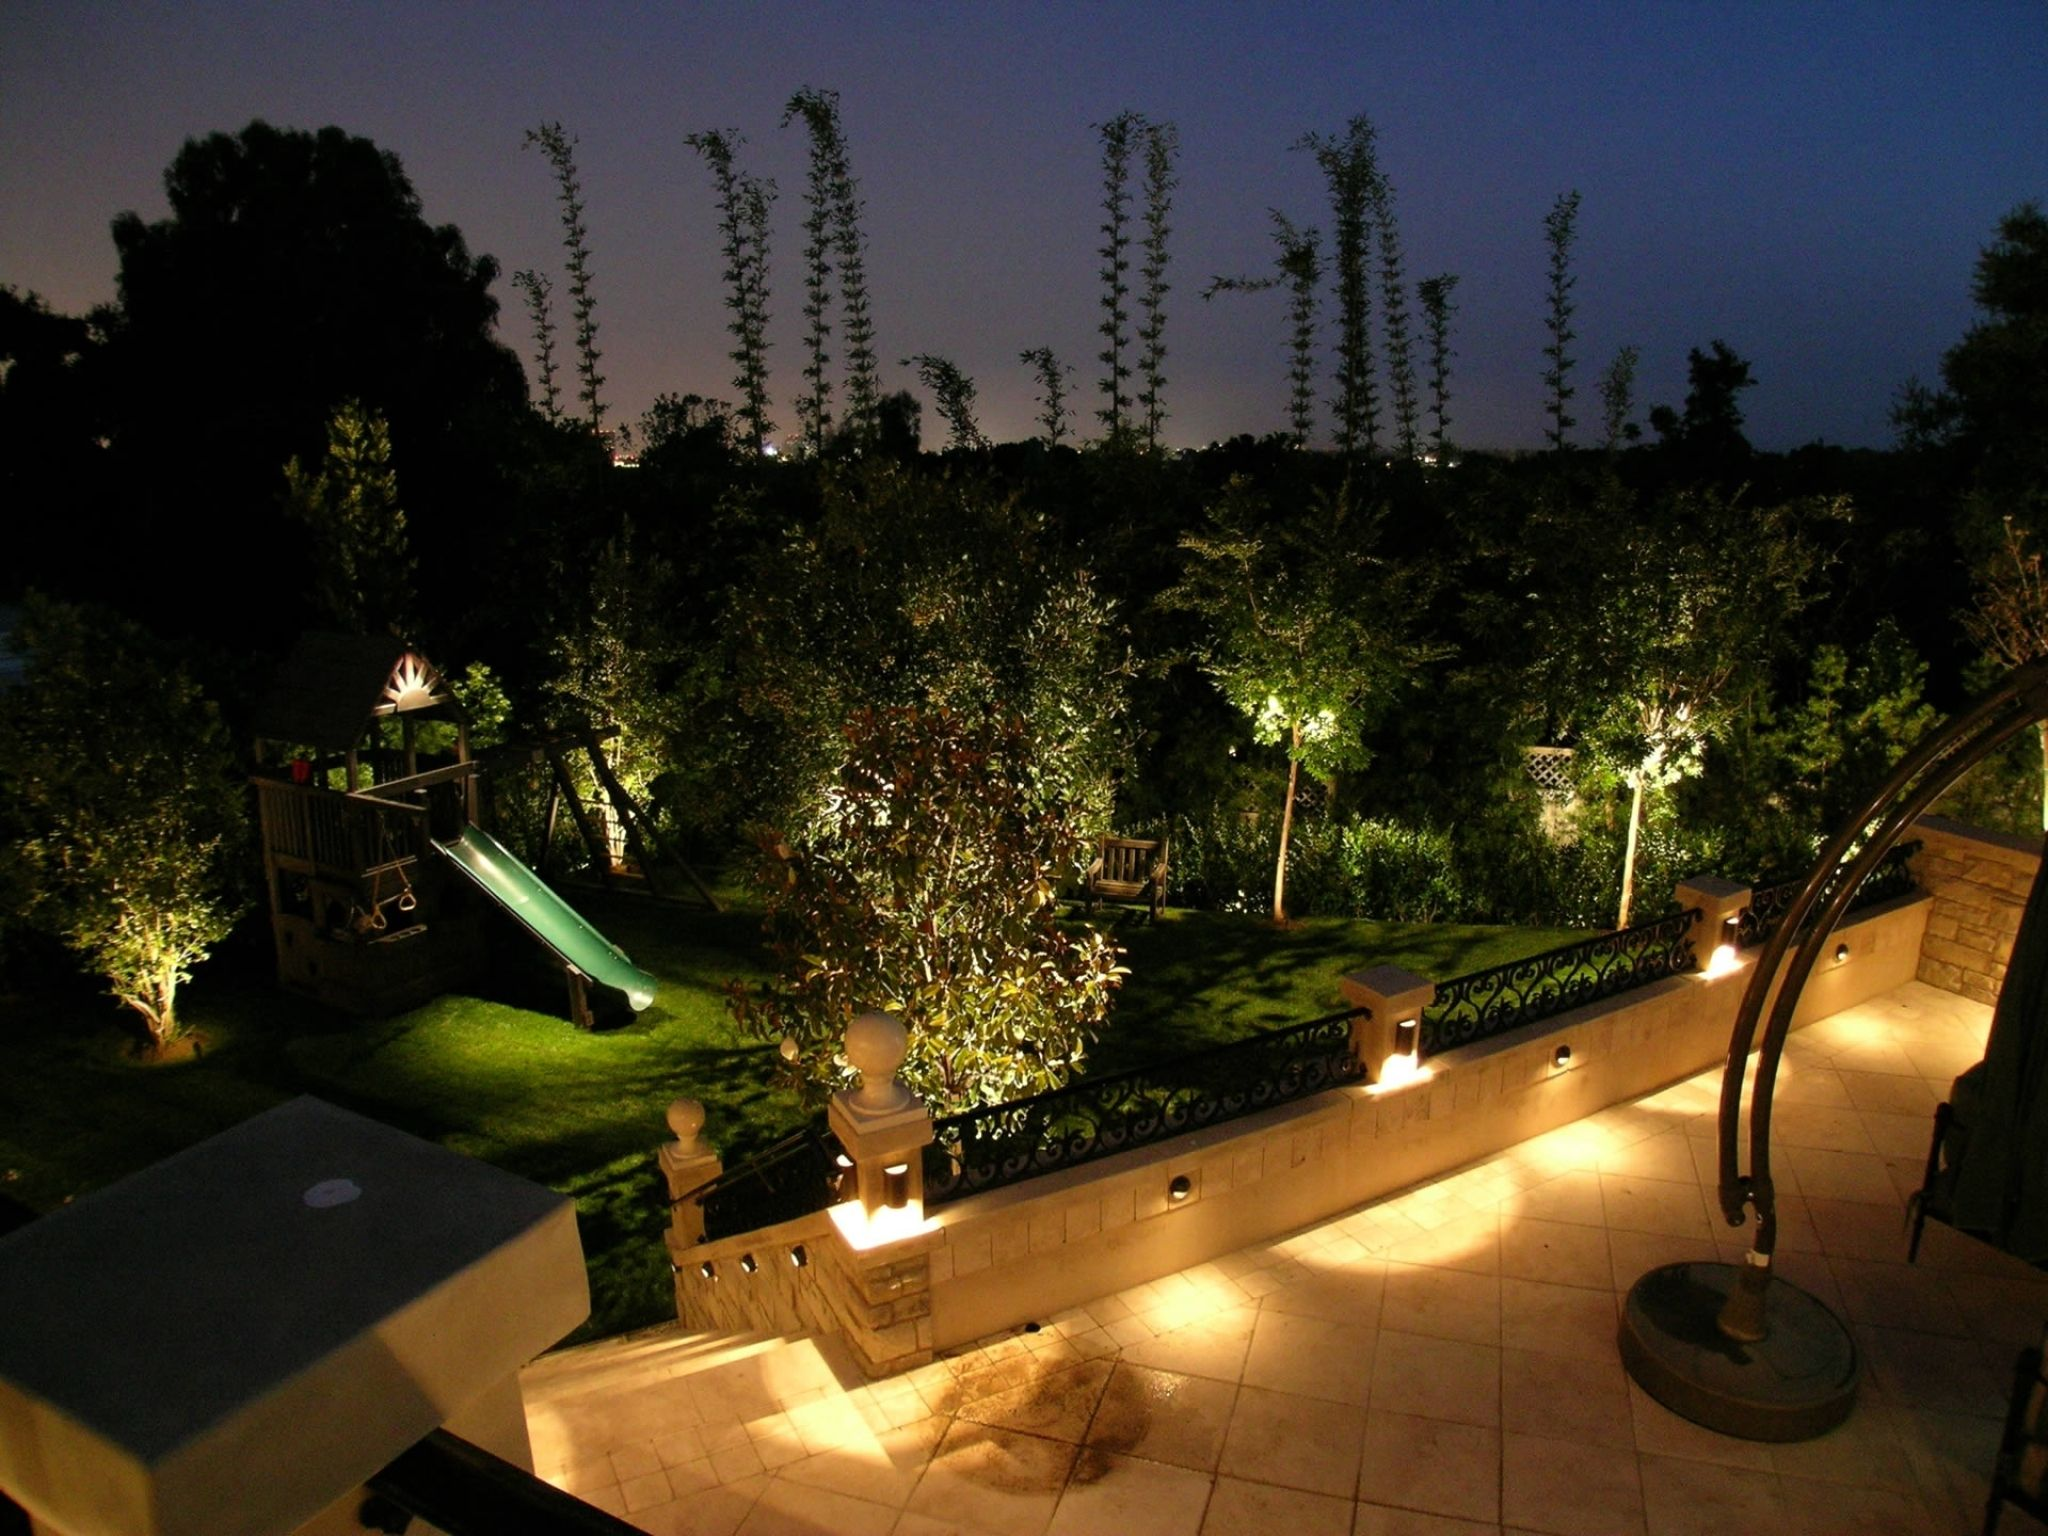 High Quality Outdoor Led Landscape Lighting   Interior Paint Color Schemes Check More At  ...